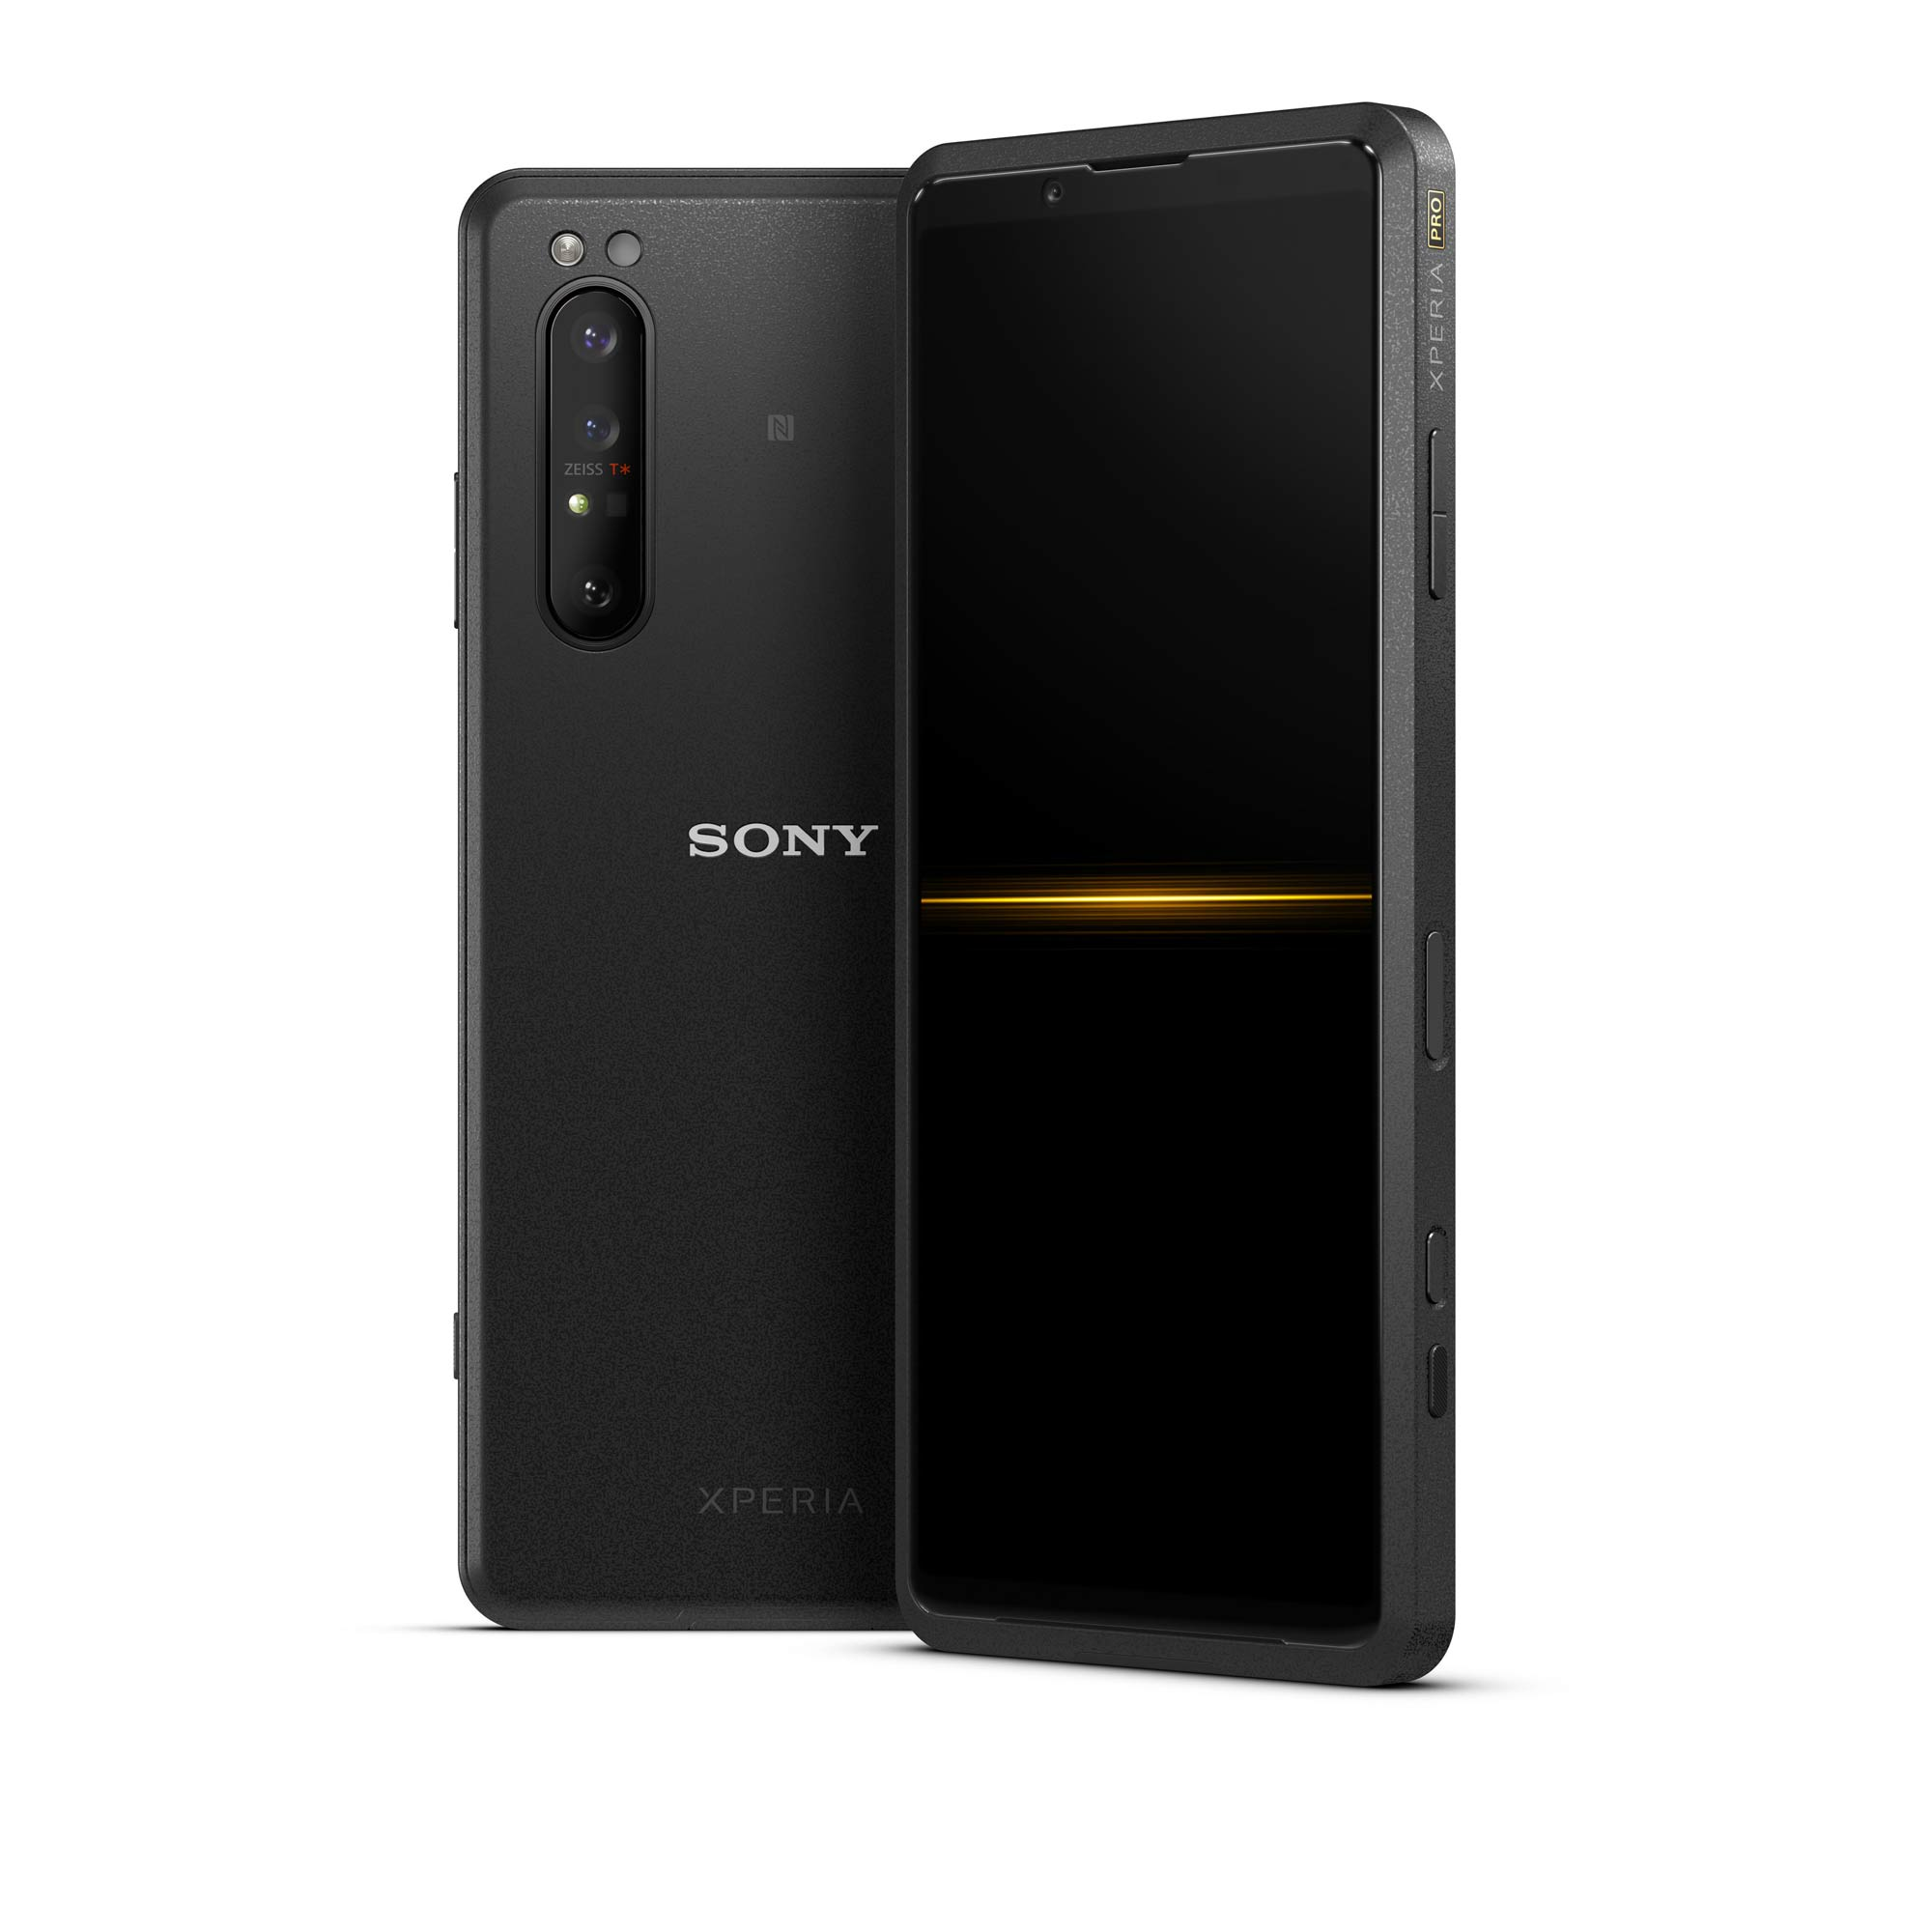 Sony XPeria Pro Detailansicht